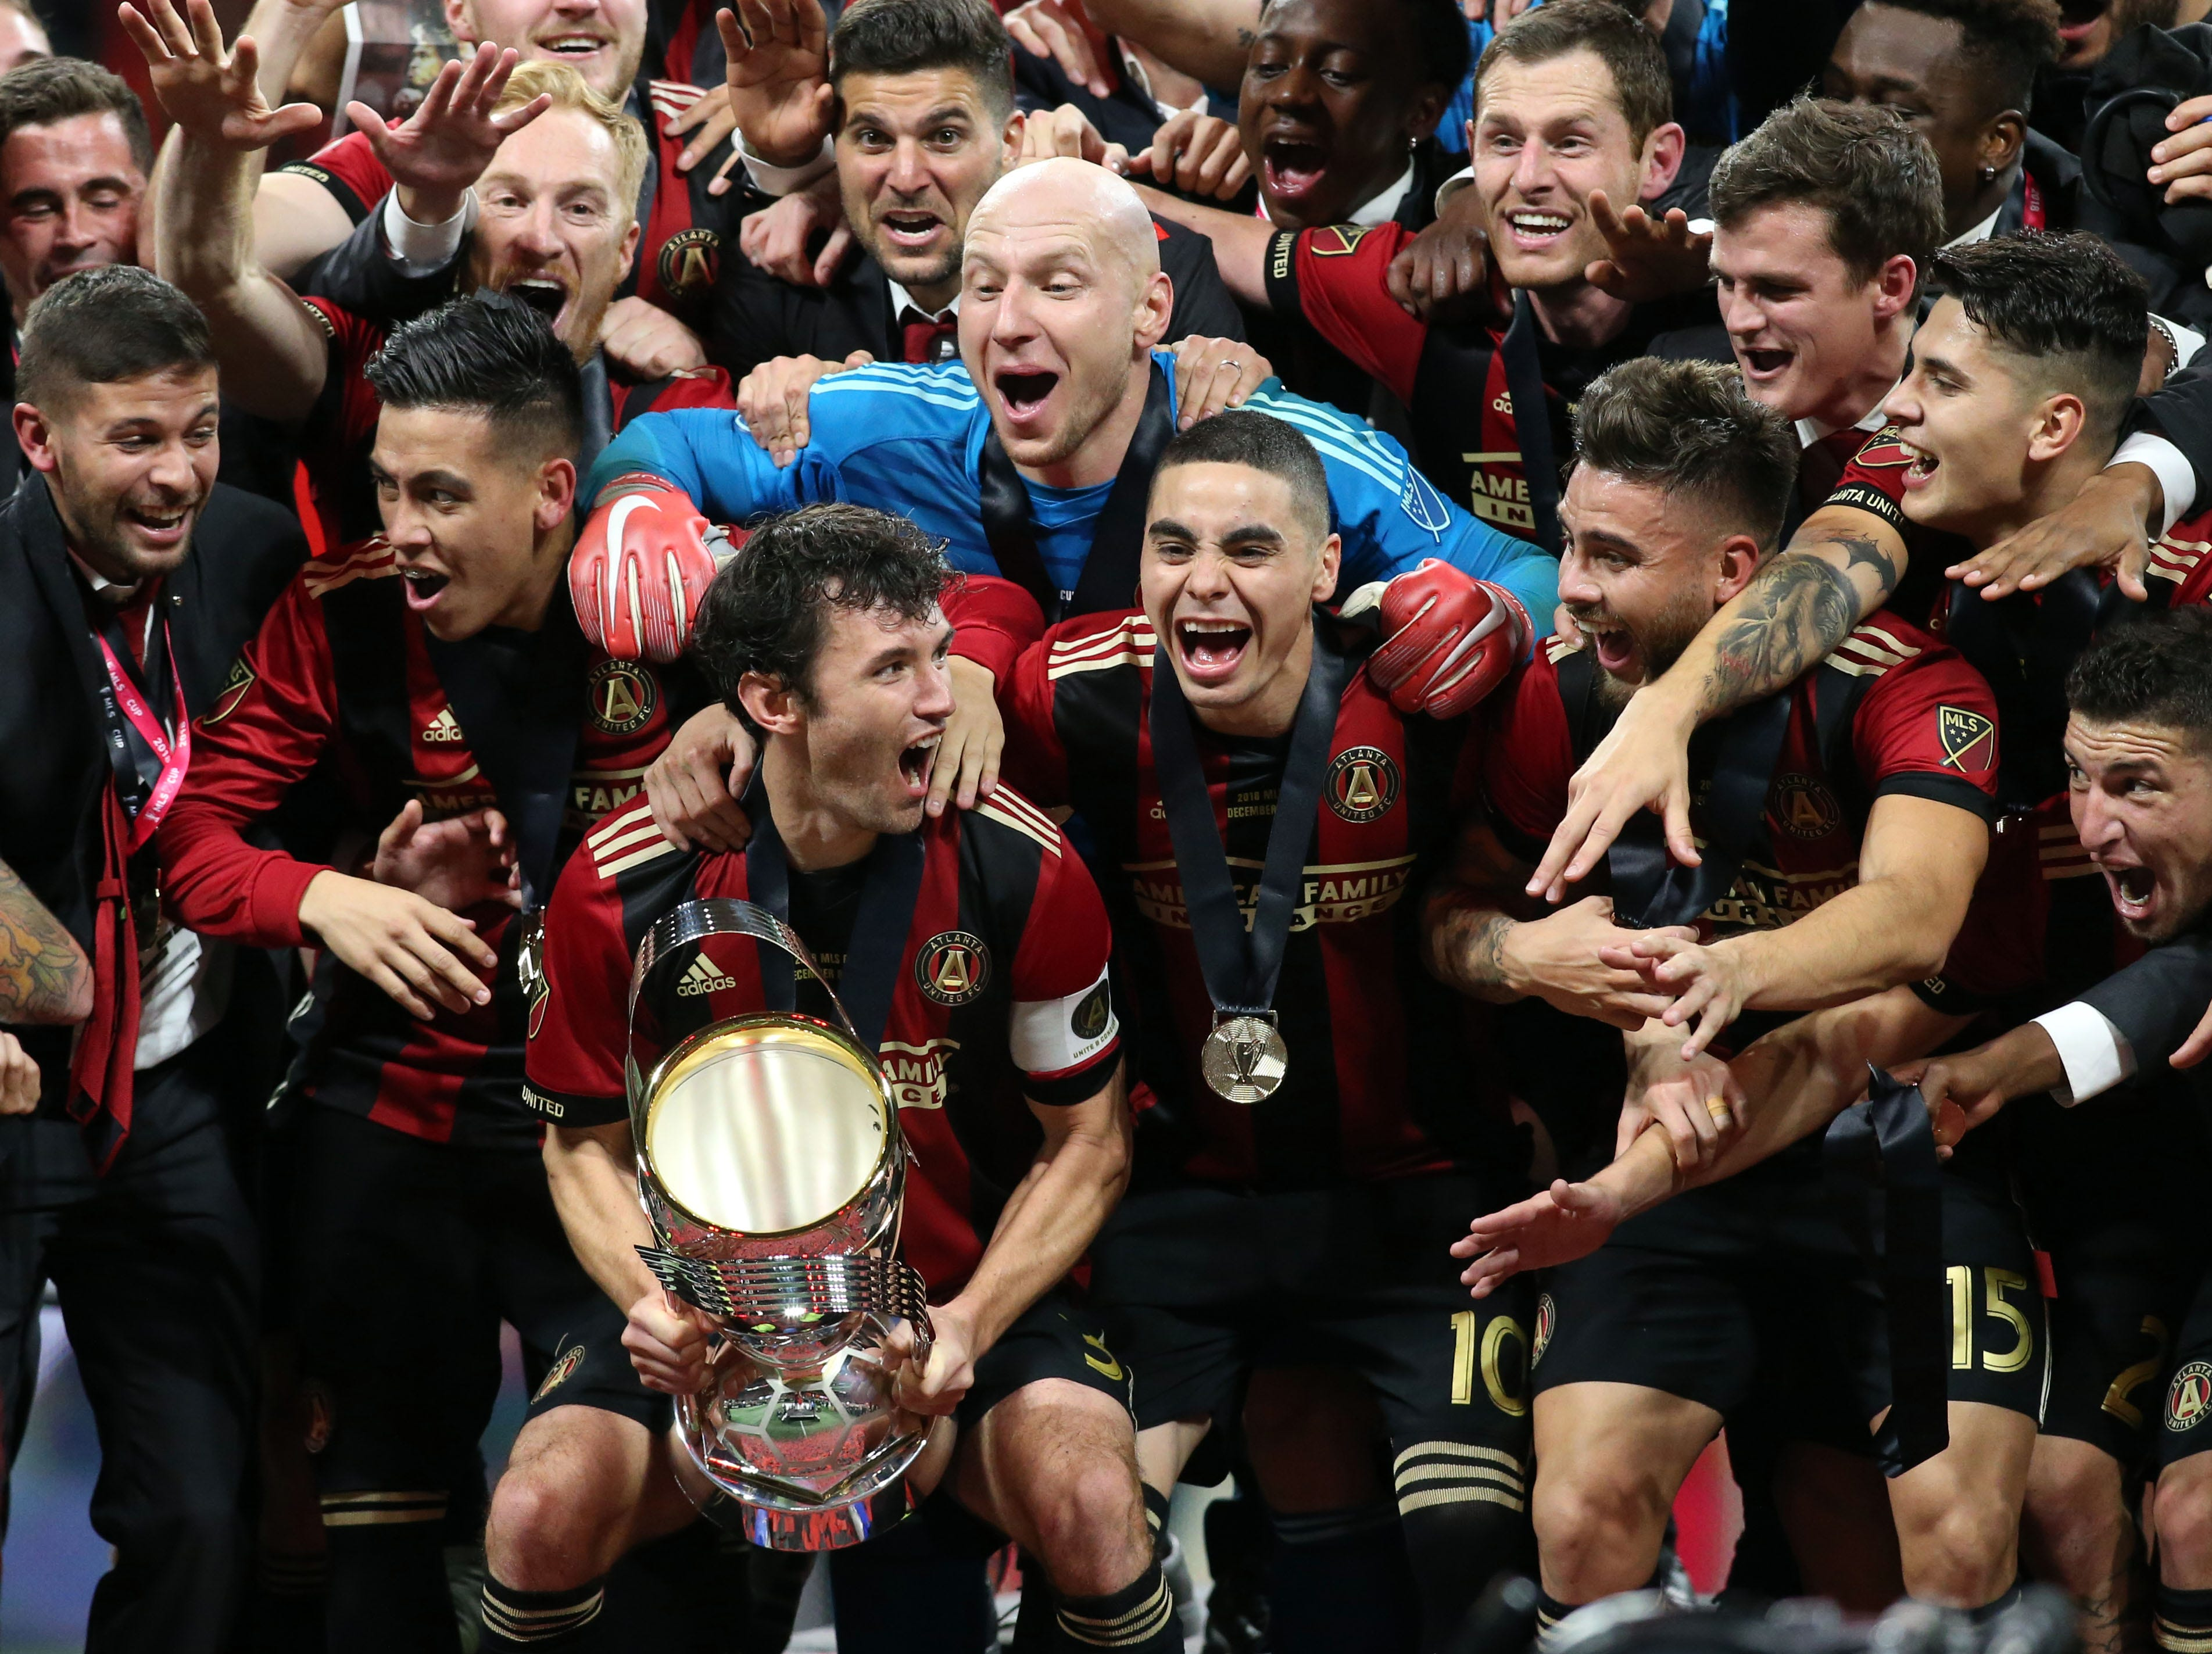 Atlanta United defender Michael Parkhurst holds the MLS Cup while celebrating with teammates after defeating the Portland Timbers 2-0 in the championship game at Mercedes-Benz Stadium.